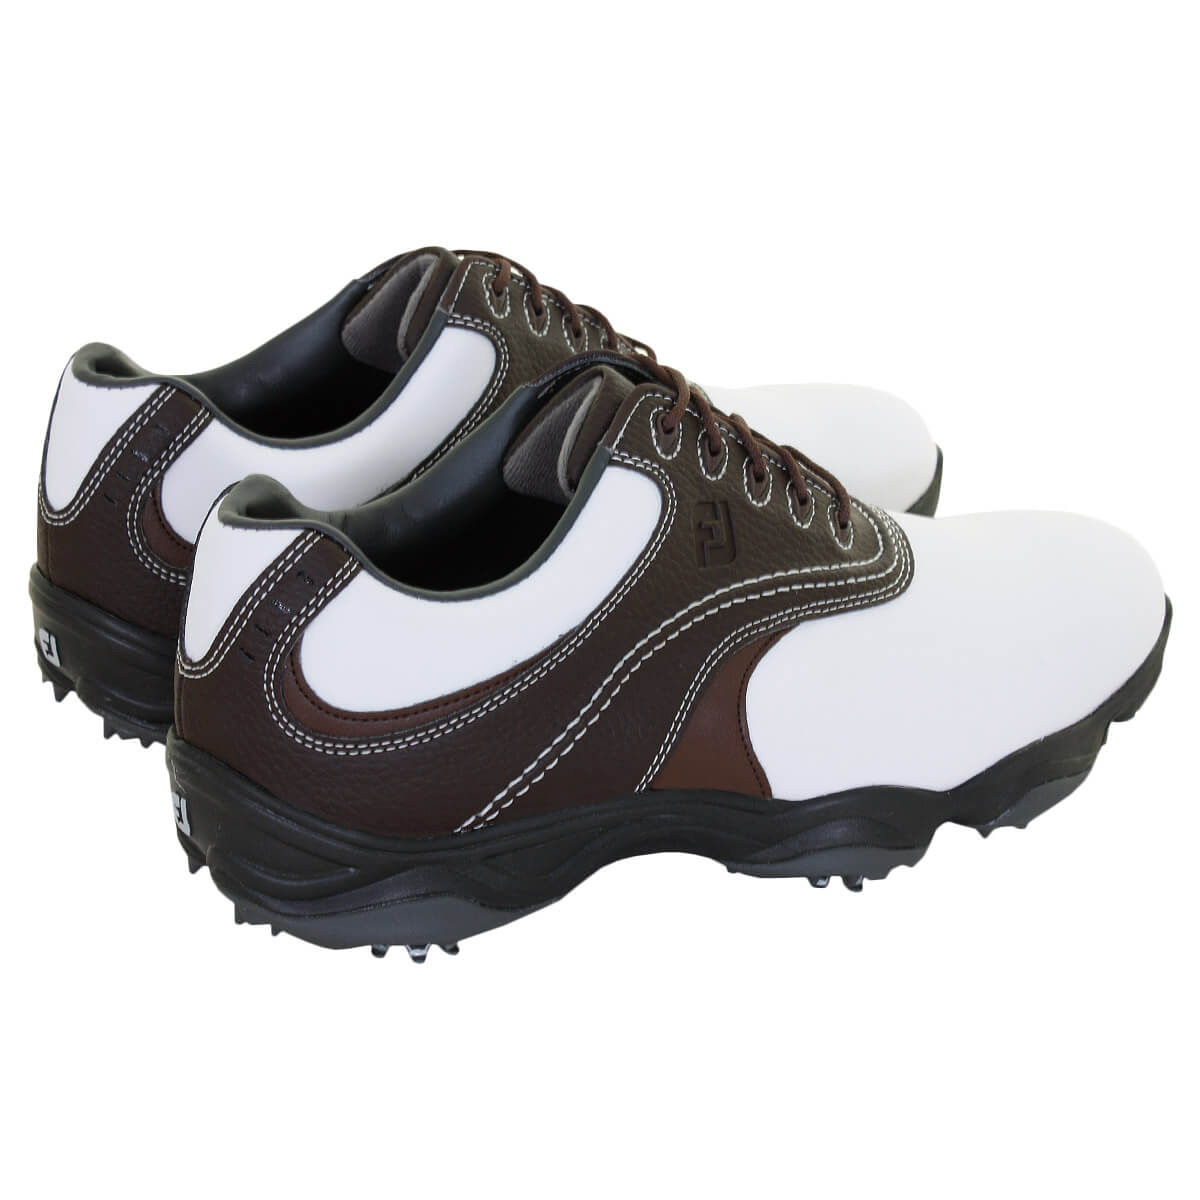 Footjoy-Mens-FJ-Originals-Leather-Waterproof-Spiked-Golf-Shoes-38-OFF-RRP thumbnail 16